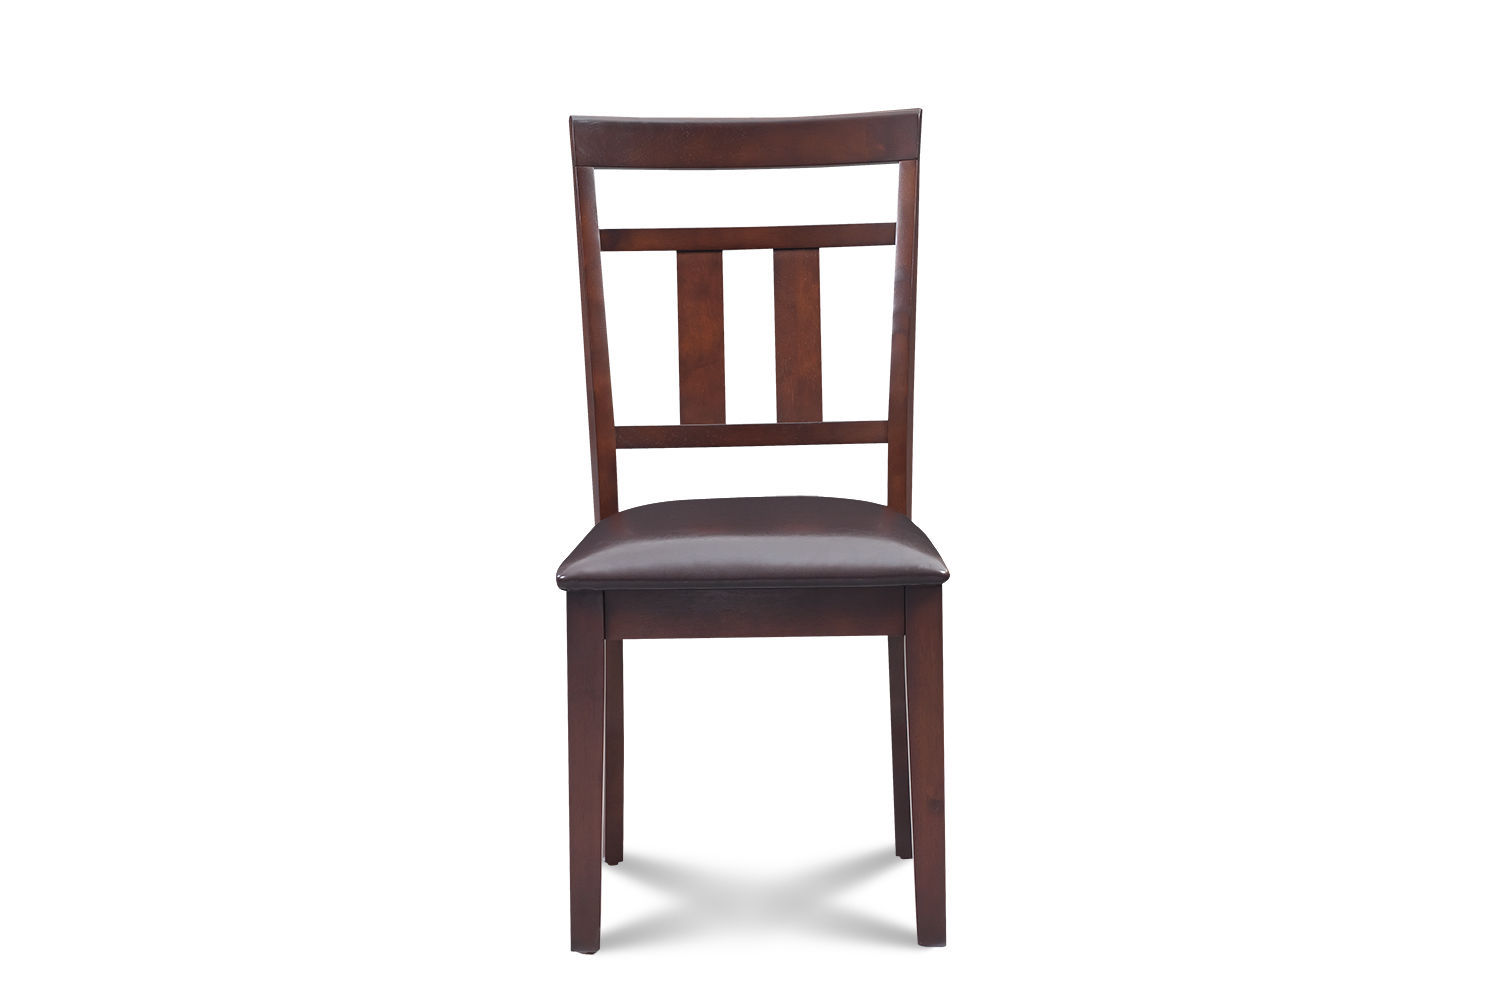 SET OF 2 KITCHEN DINING SIDE CHAIRS w/ FAUX SEATS IN MAHOGANY FINISH